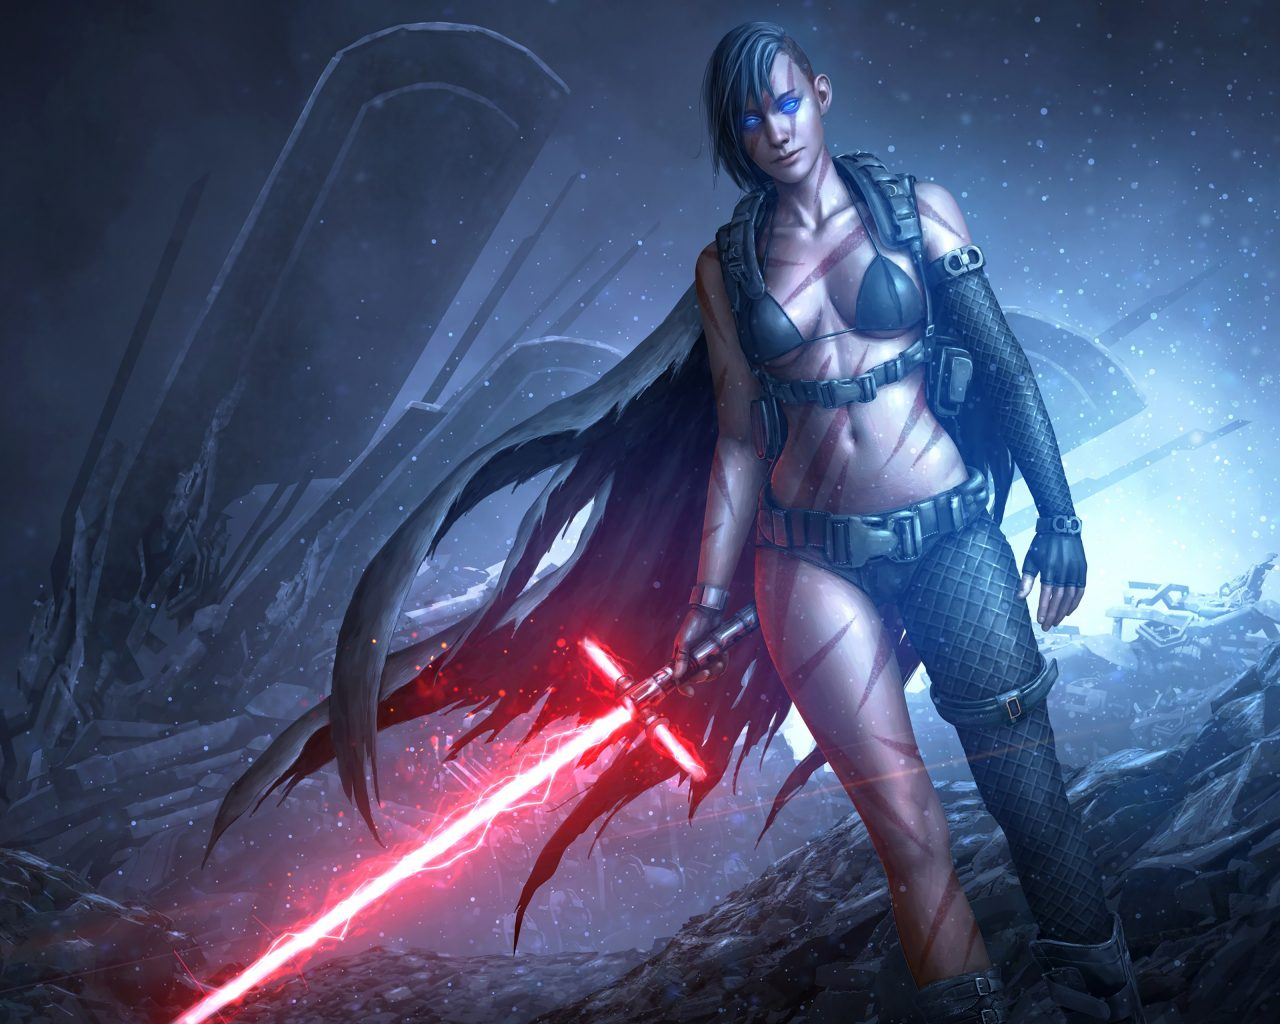 Star Wars Girl Lightsaber Red Game 4k Wallpaper Best Wallpapers